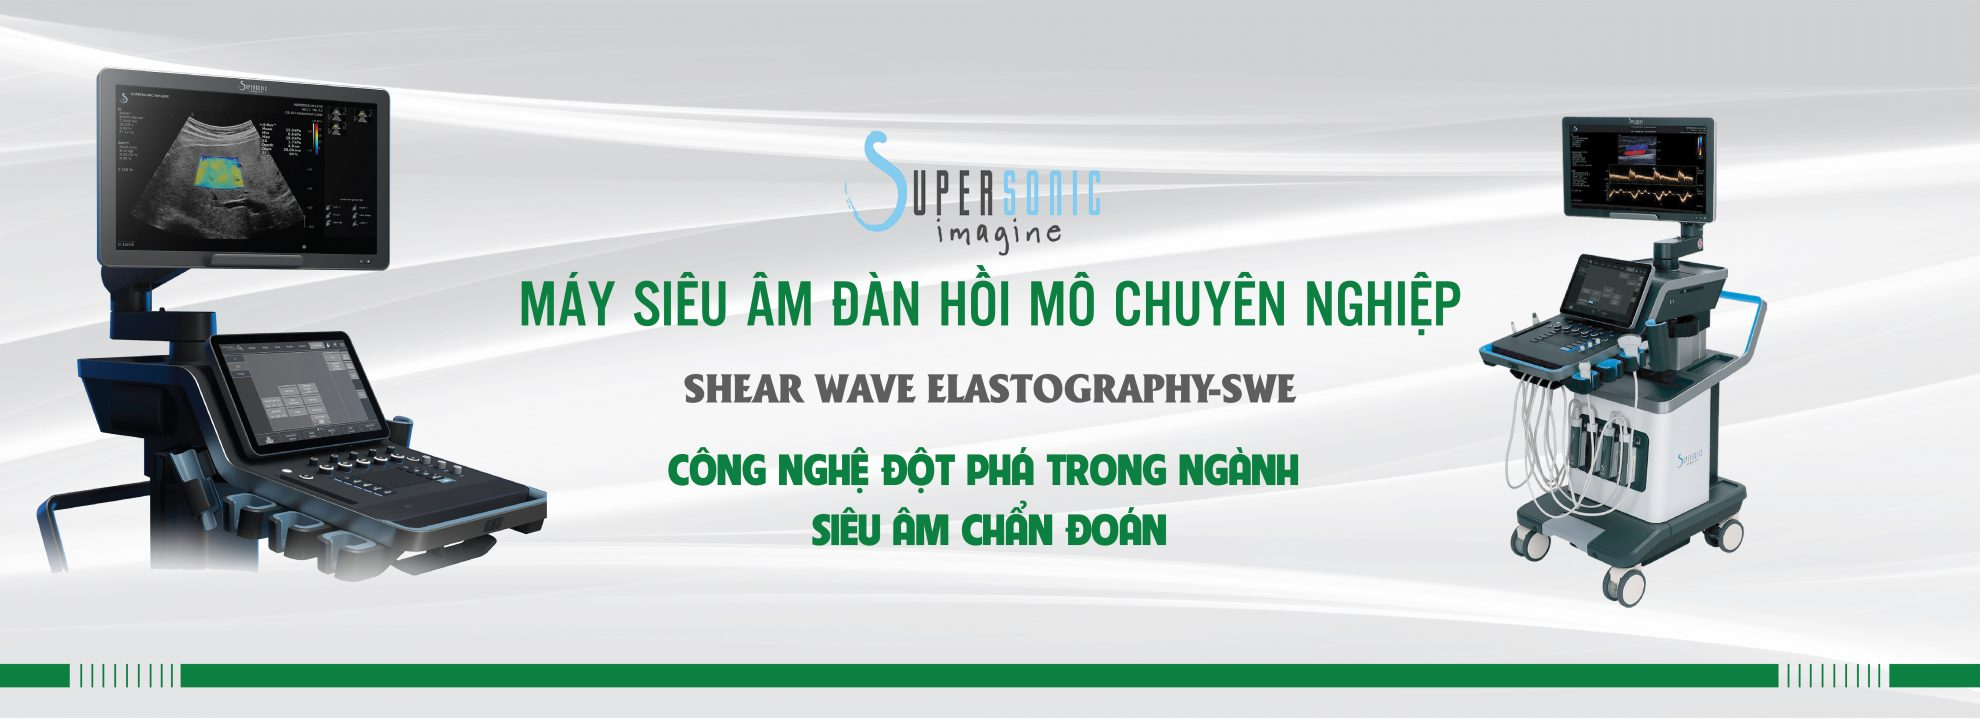 Banner Sieu am dan hoi mo SuperSonic Imagine - Cty Nhat Khoa - 1980x720px-01-01